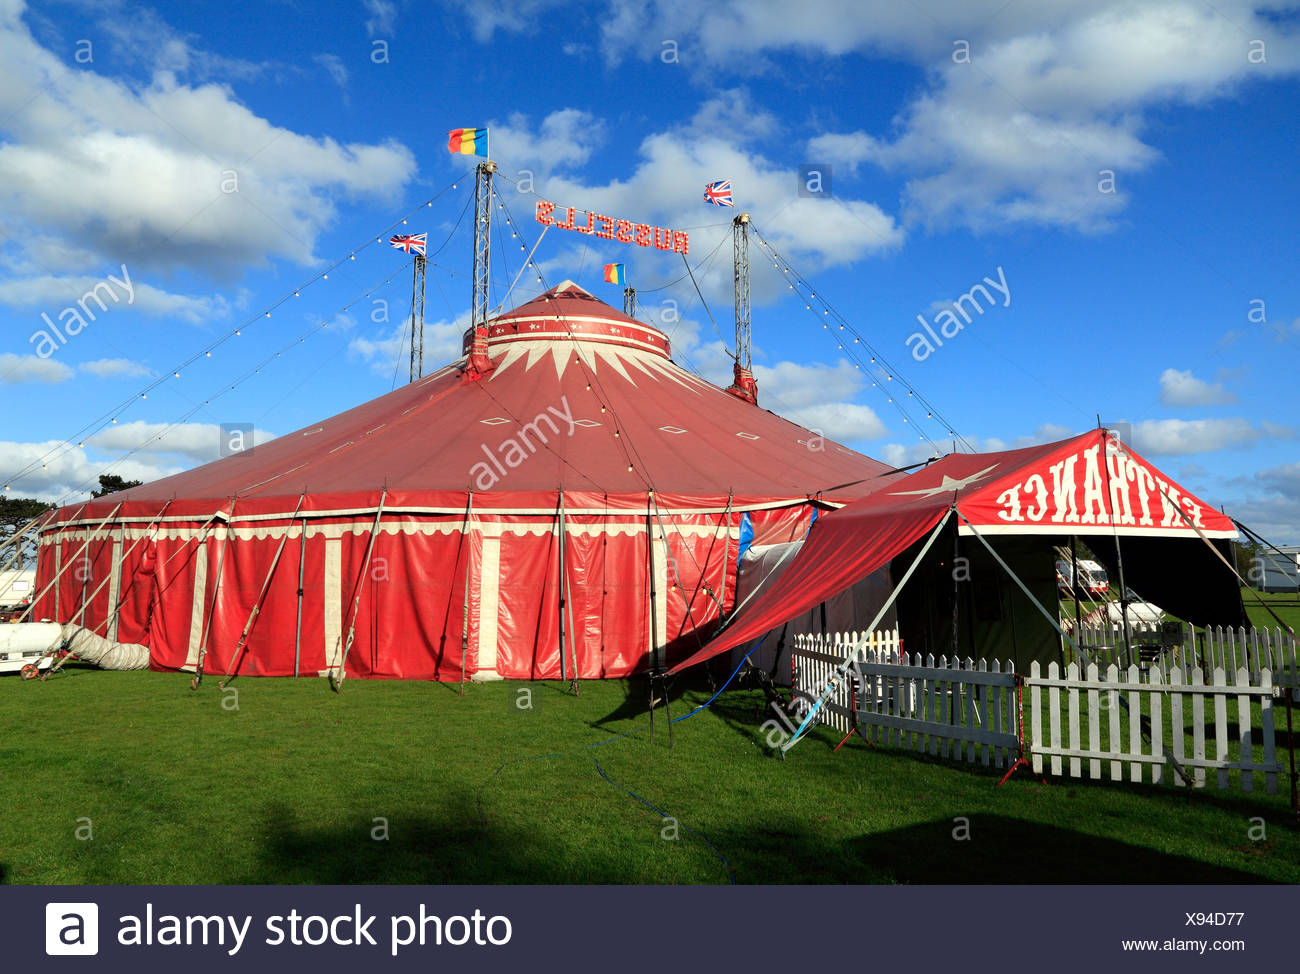 Russells International Circus, UK travelling circus shows, Big Top tent, Norfolk, England - Stock Image